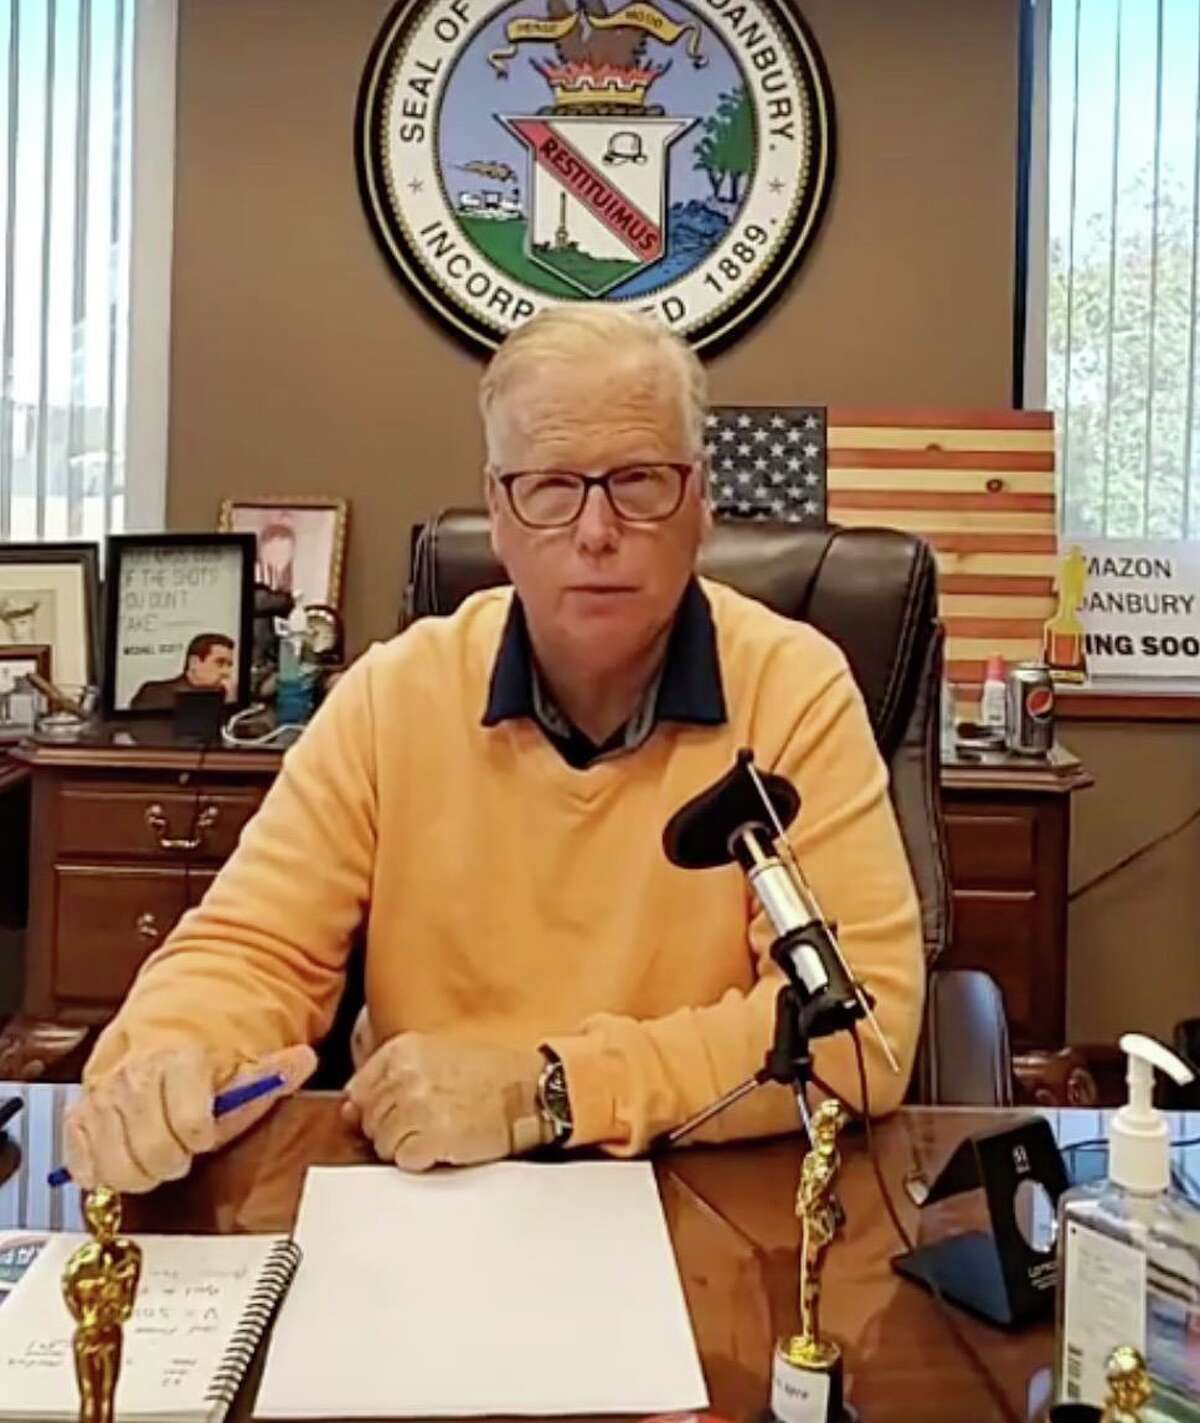 Mayor Mark Boughton gives an update on COVID-19 in Danbury, Conn., Thursday, Oct. 8, 2020.